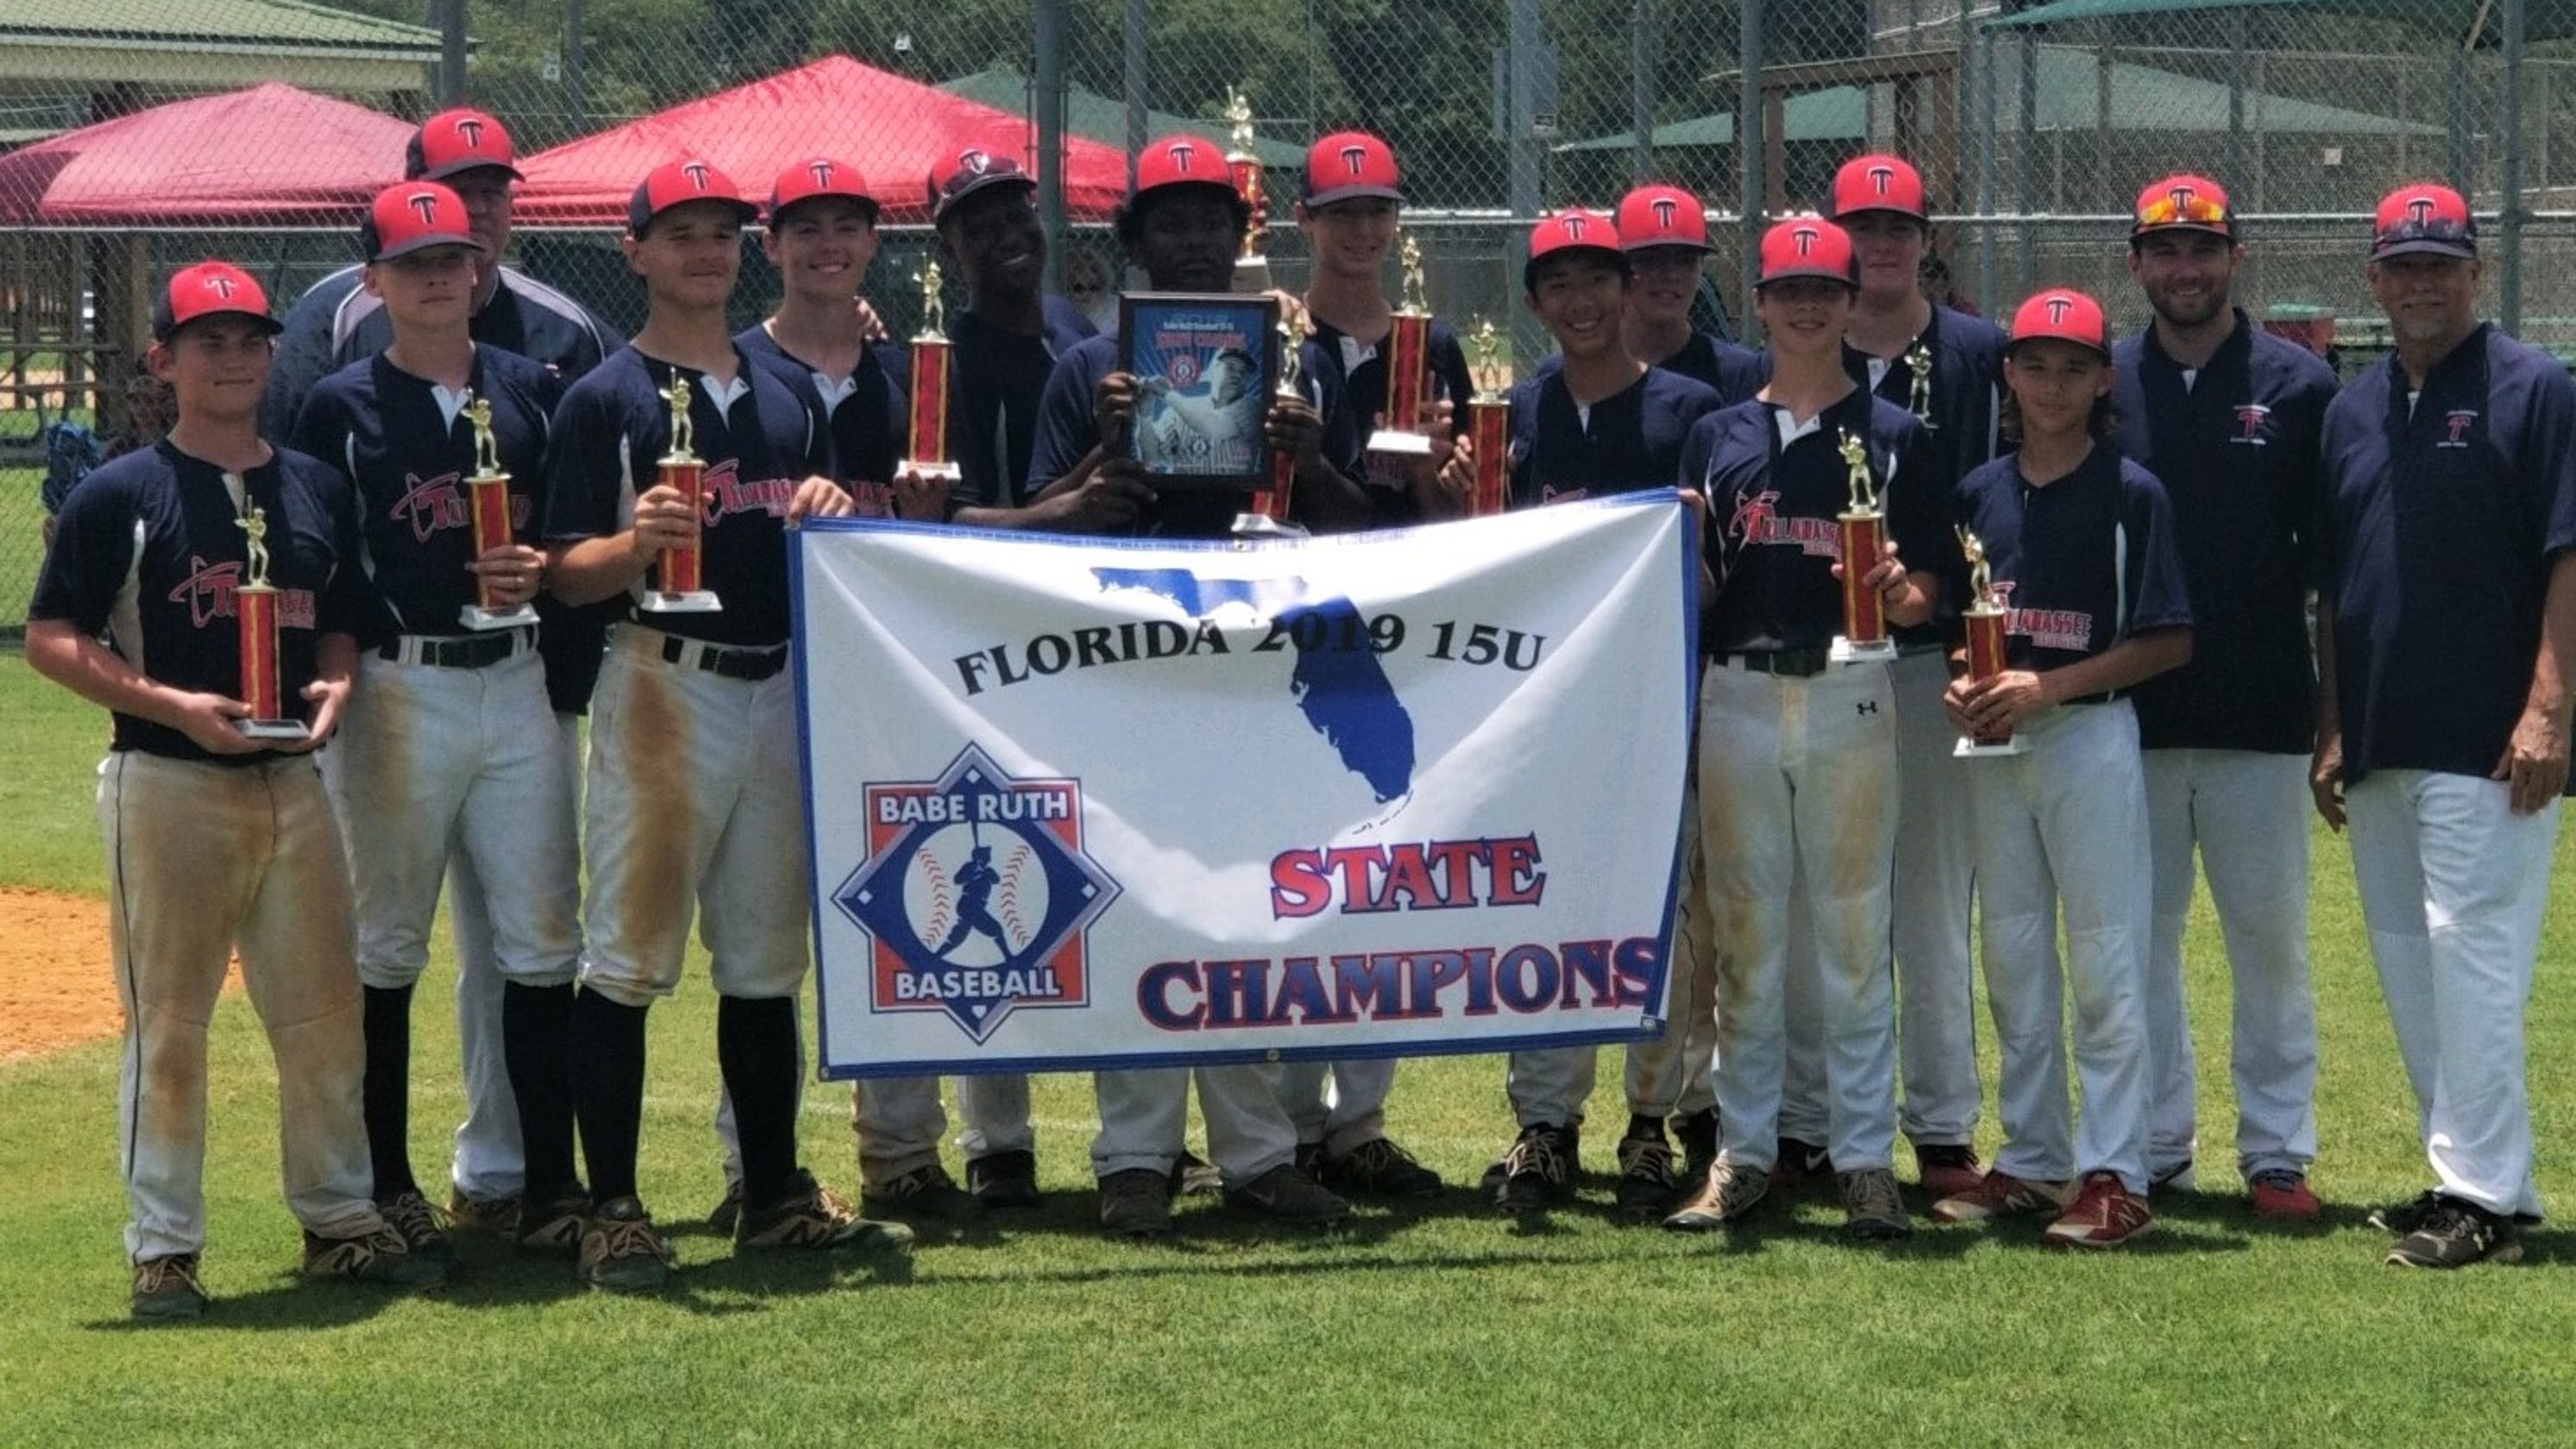 Tallahassee-Leon Babe Ruth goes 2 for 2 at state tournaments